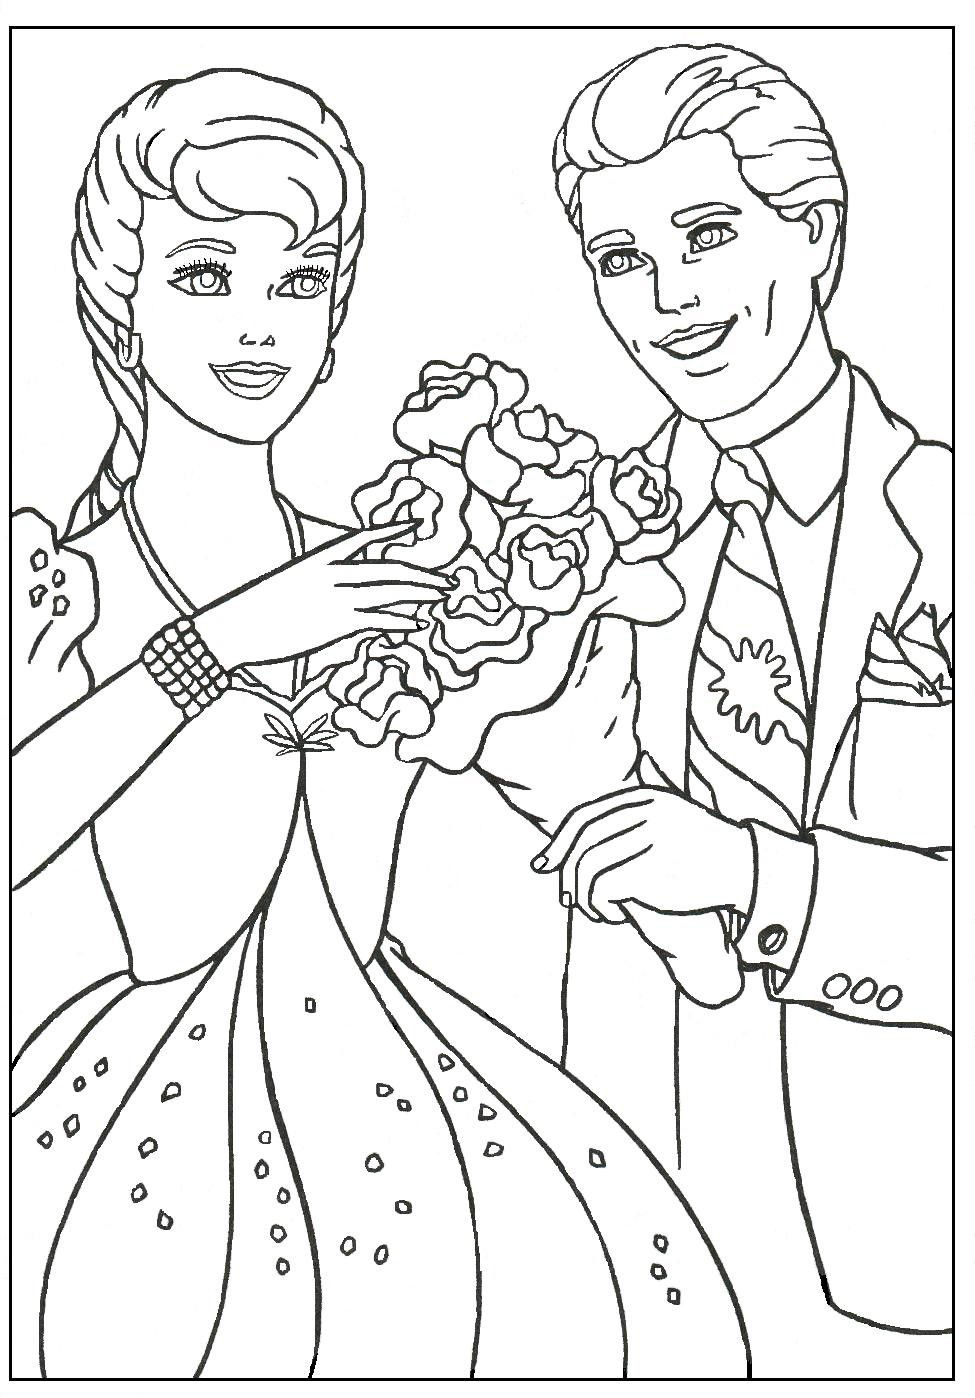 Barbie And Ken Coloring Pages Through The Thousands Of Photos On Line Regarding Barbie And Ken C Cartoon Coloring Pages Barbie Coloring Pages Barbie Coloring